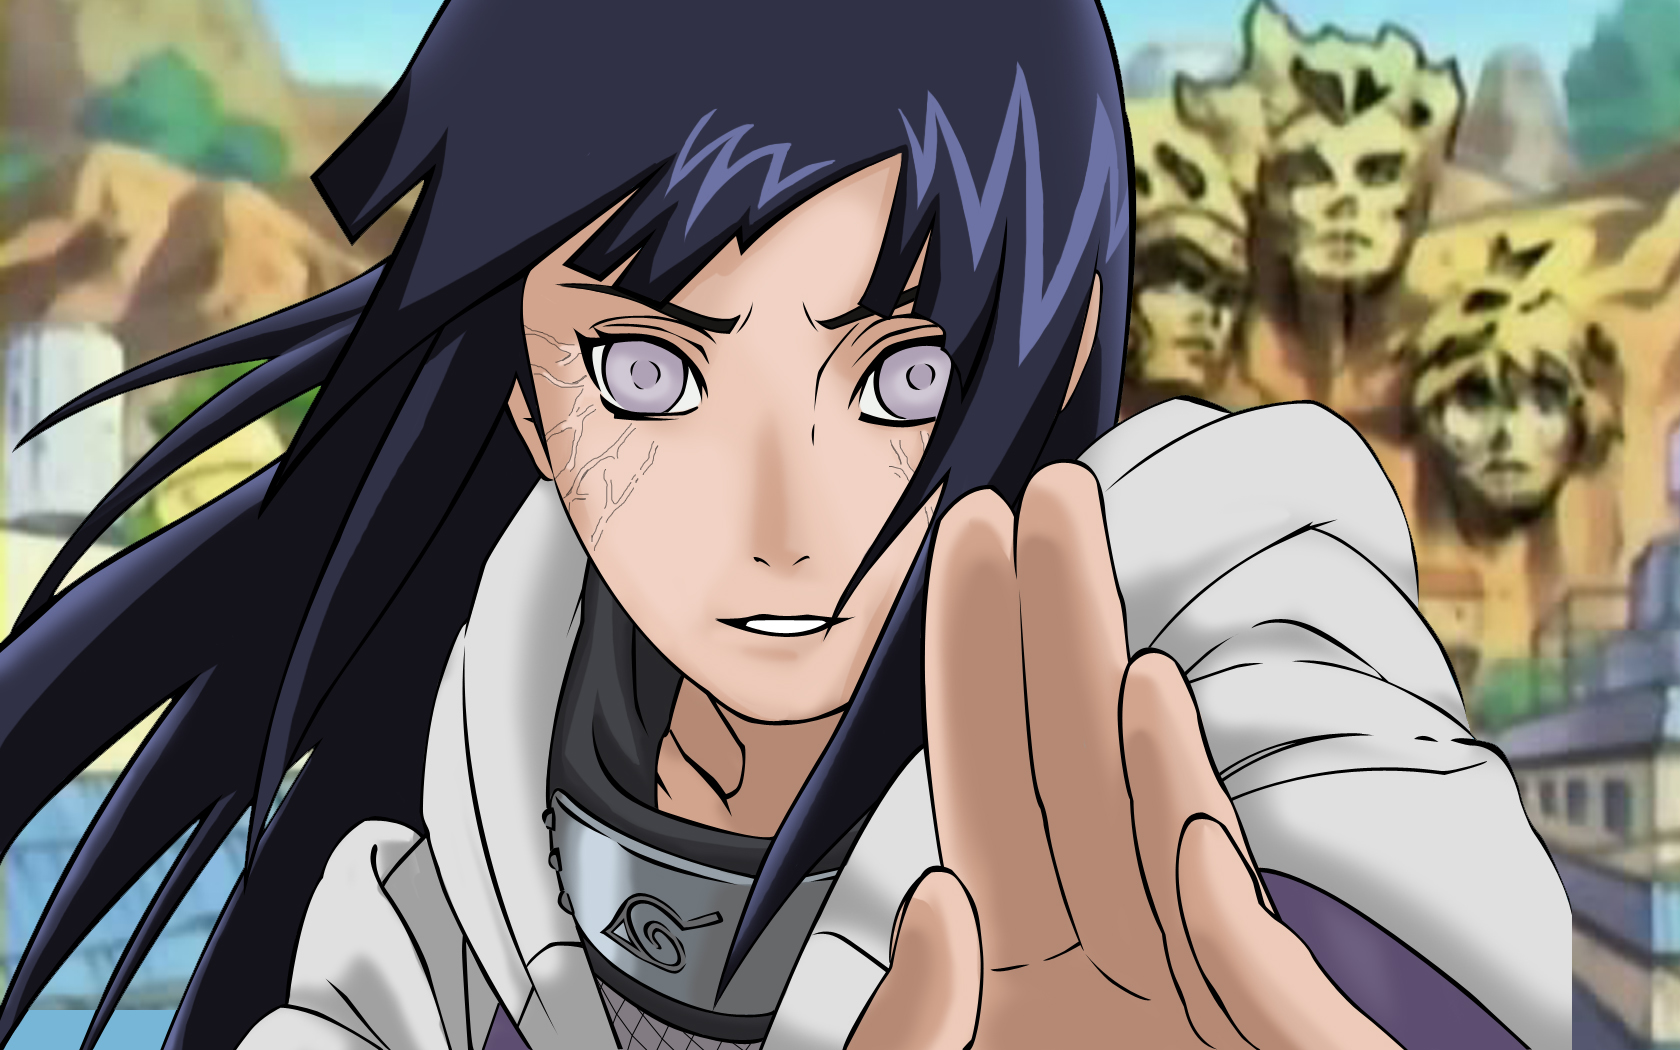 Naruto Wallpaper and Background Image   1680x1050   ID ...